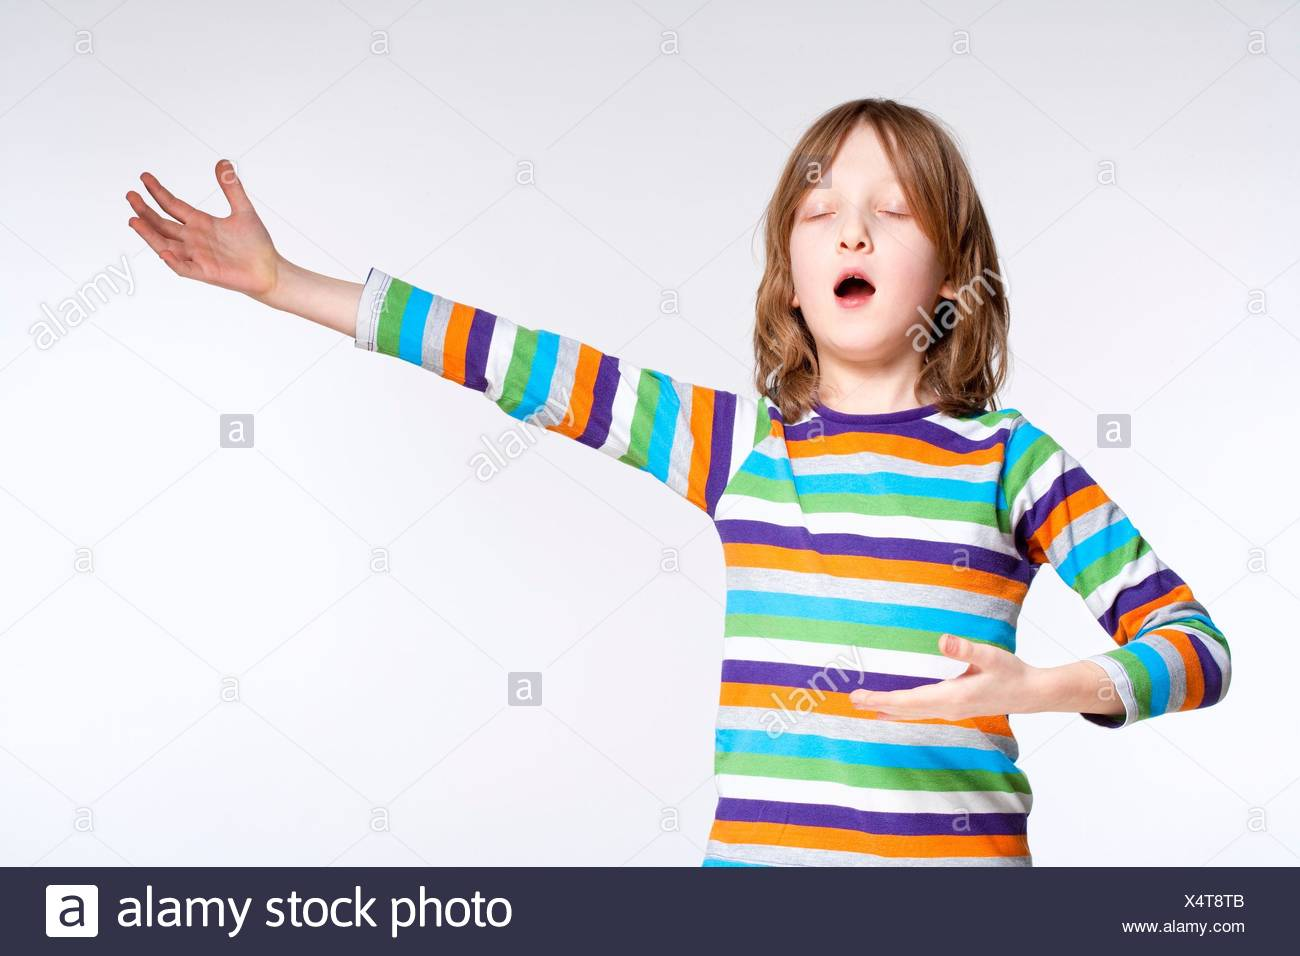 Portrait of a Boy with Blond Hair Acting as Opera Singer. Stock Photo